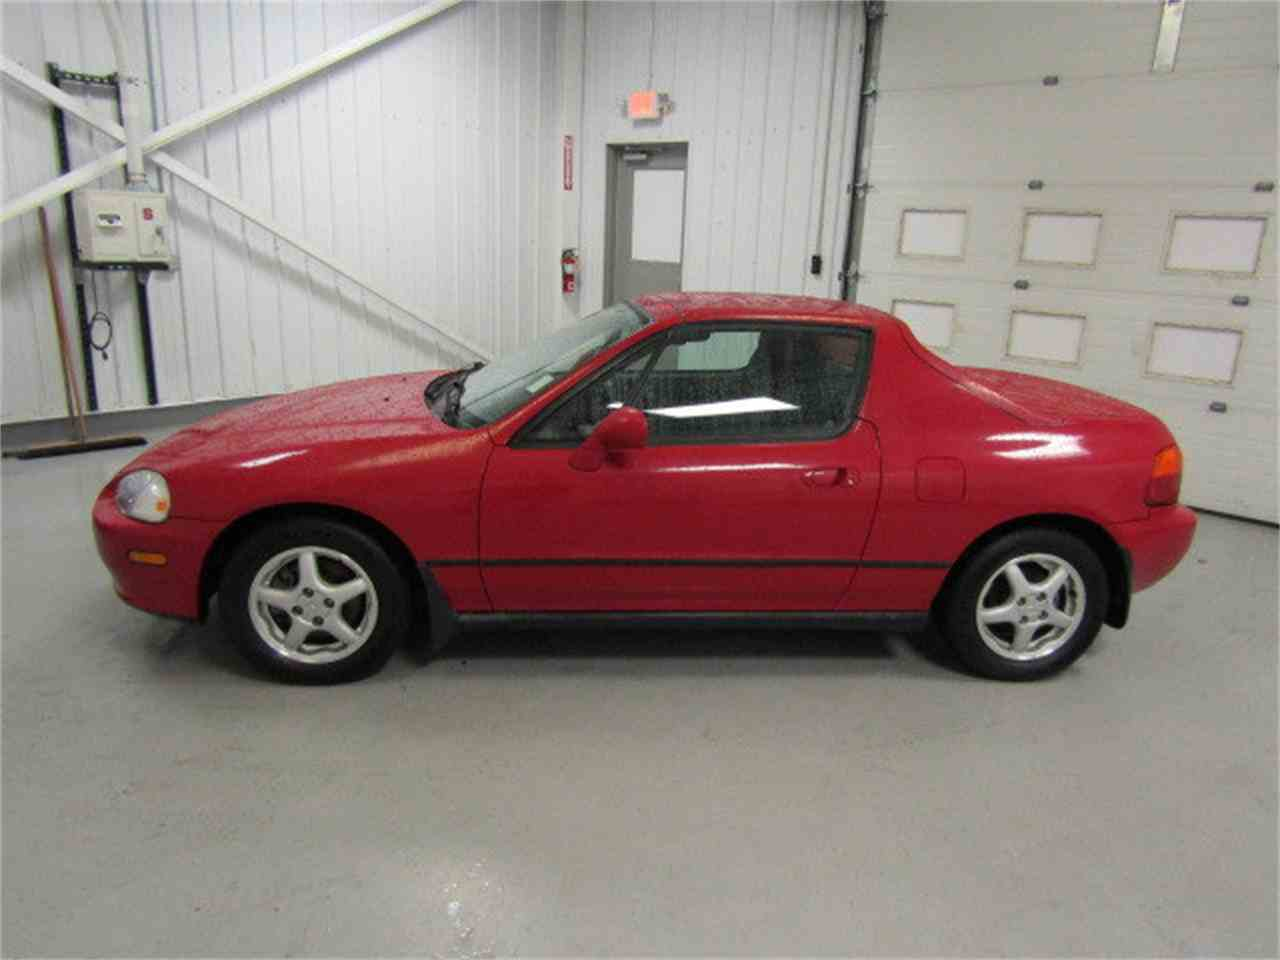 si july sold size cit full civic sol new item del in window for auction honda sale